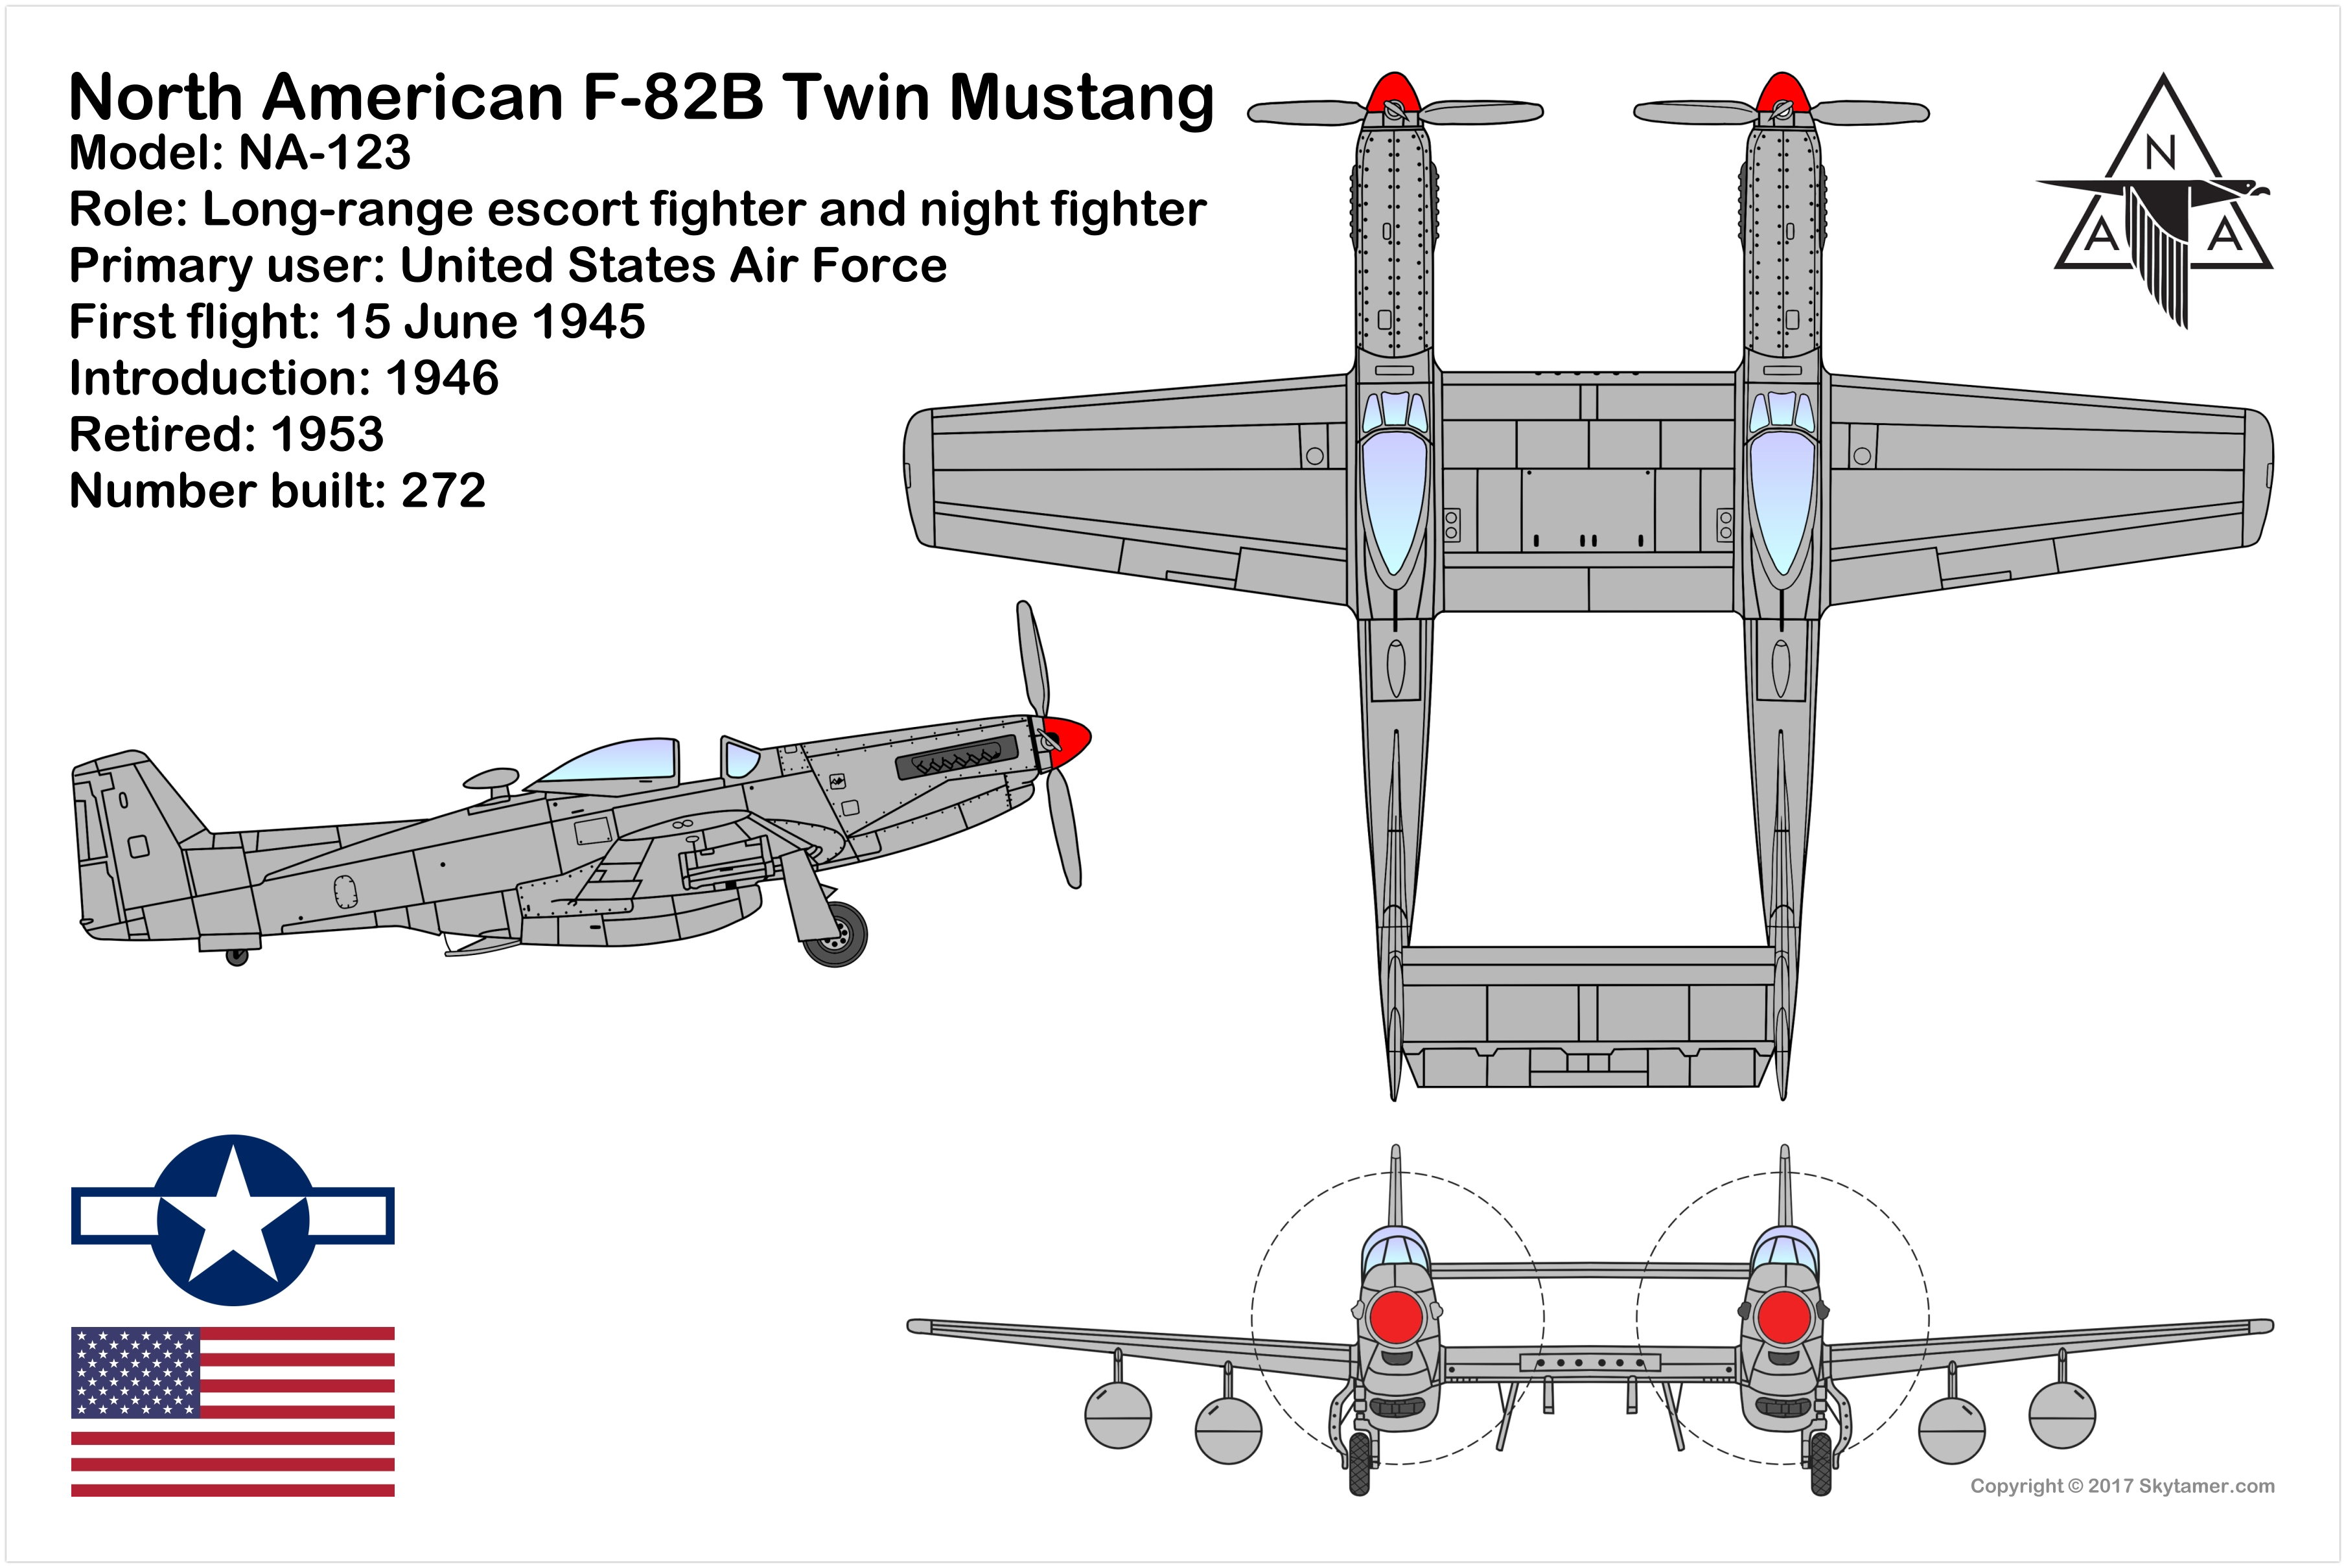 North American F-82B Twin Mustang, Twin-fuselage two-engine two-seat